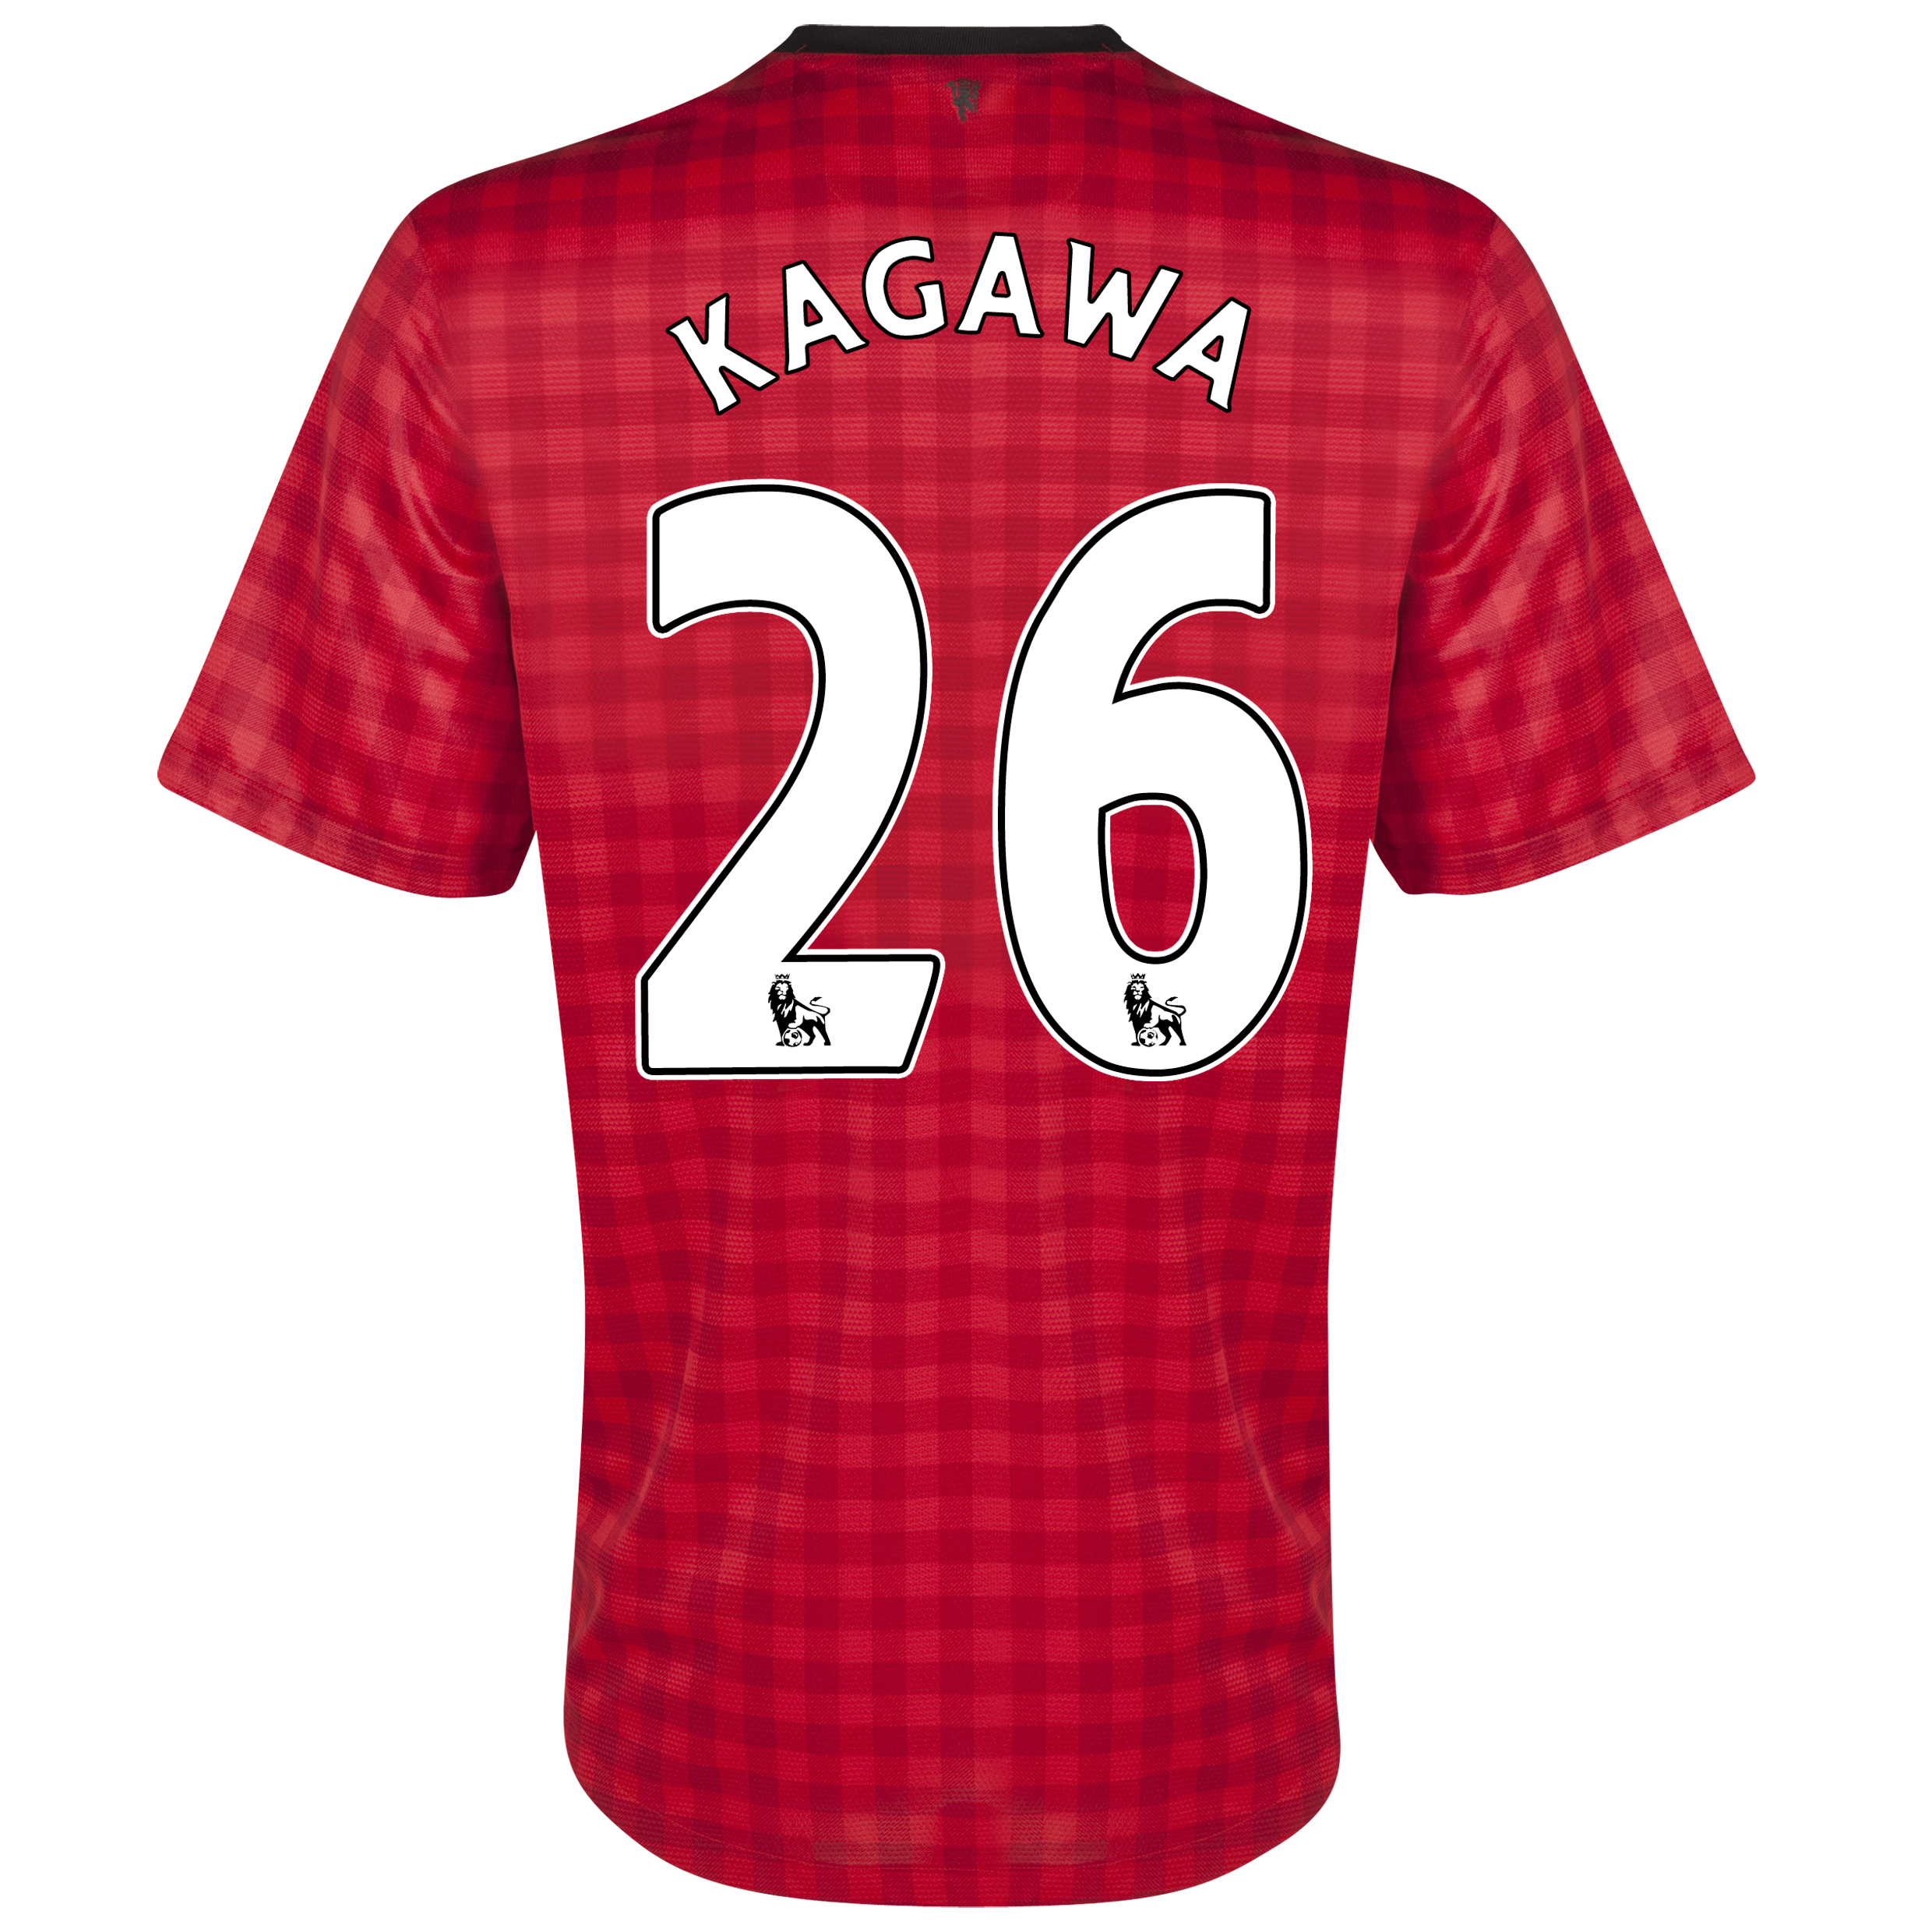 Manchester United Home Shirt 2012/13  - Youths with Kagawa 26 printing